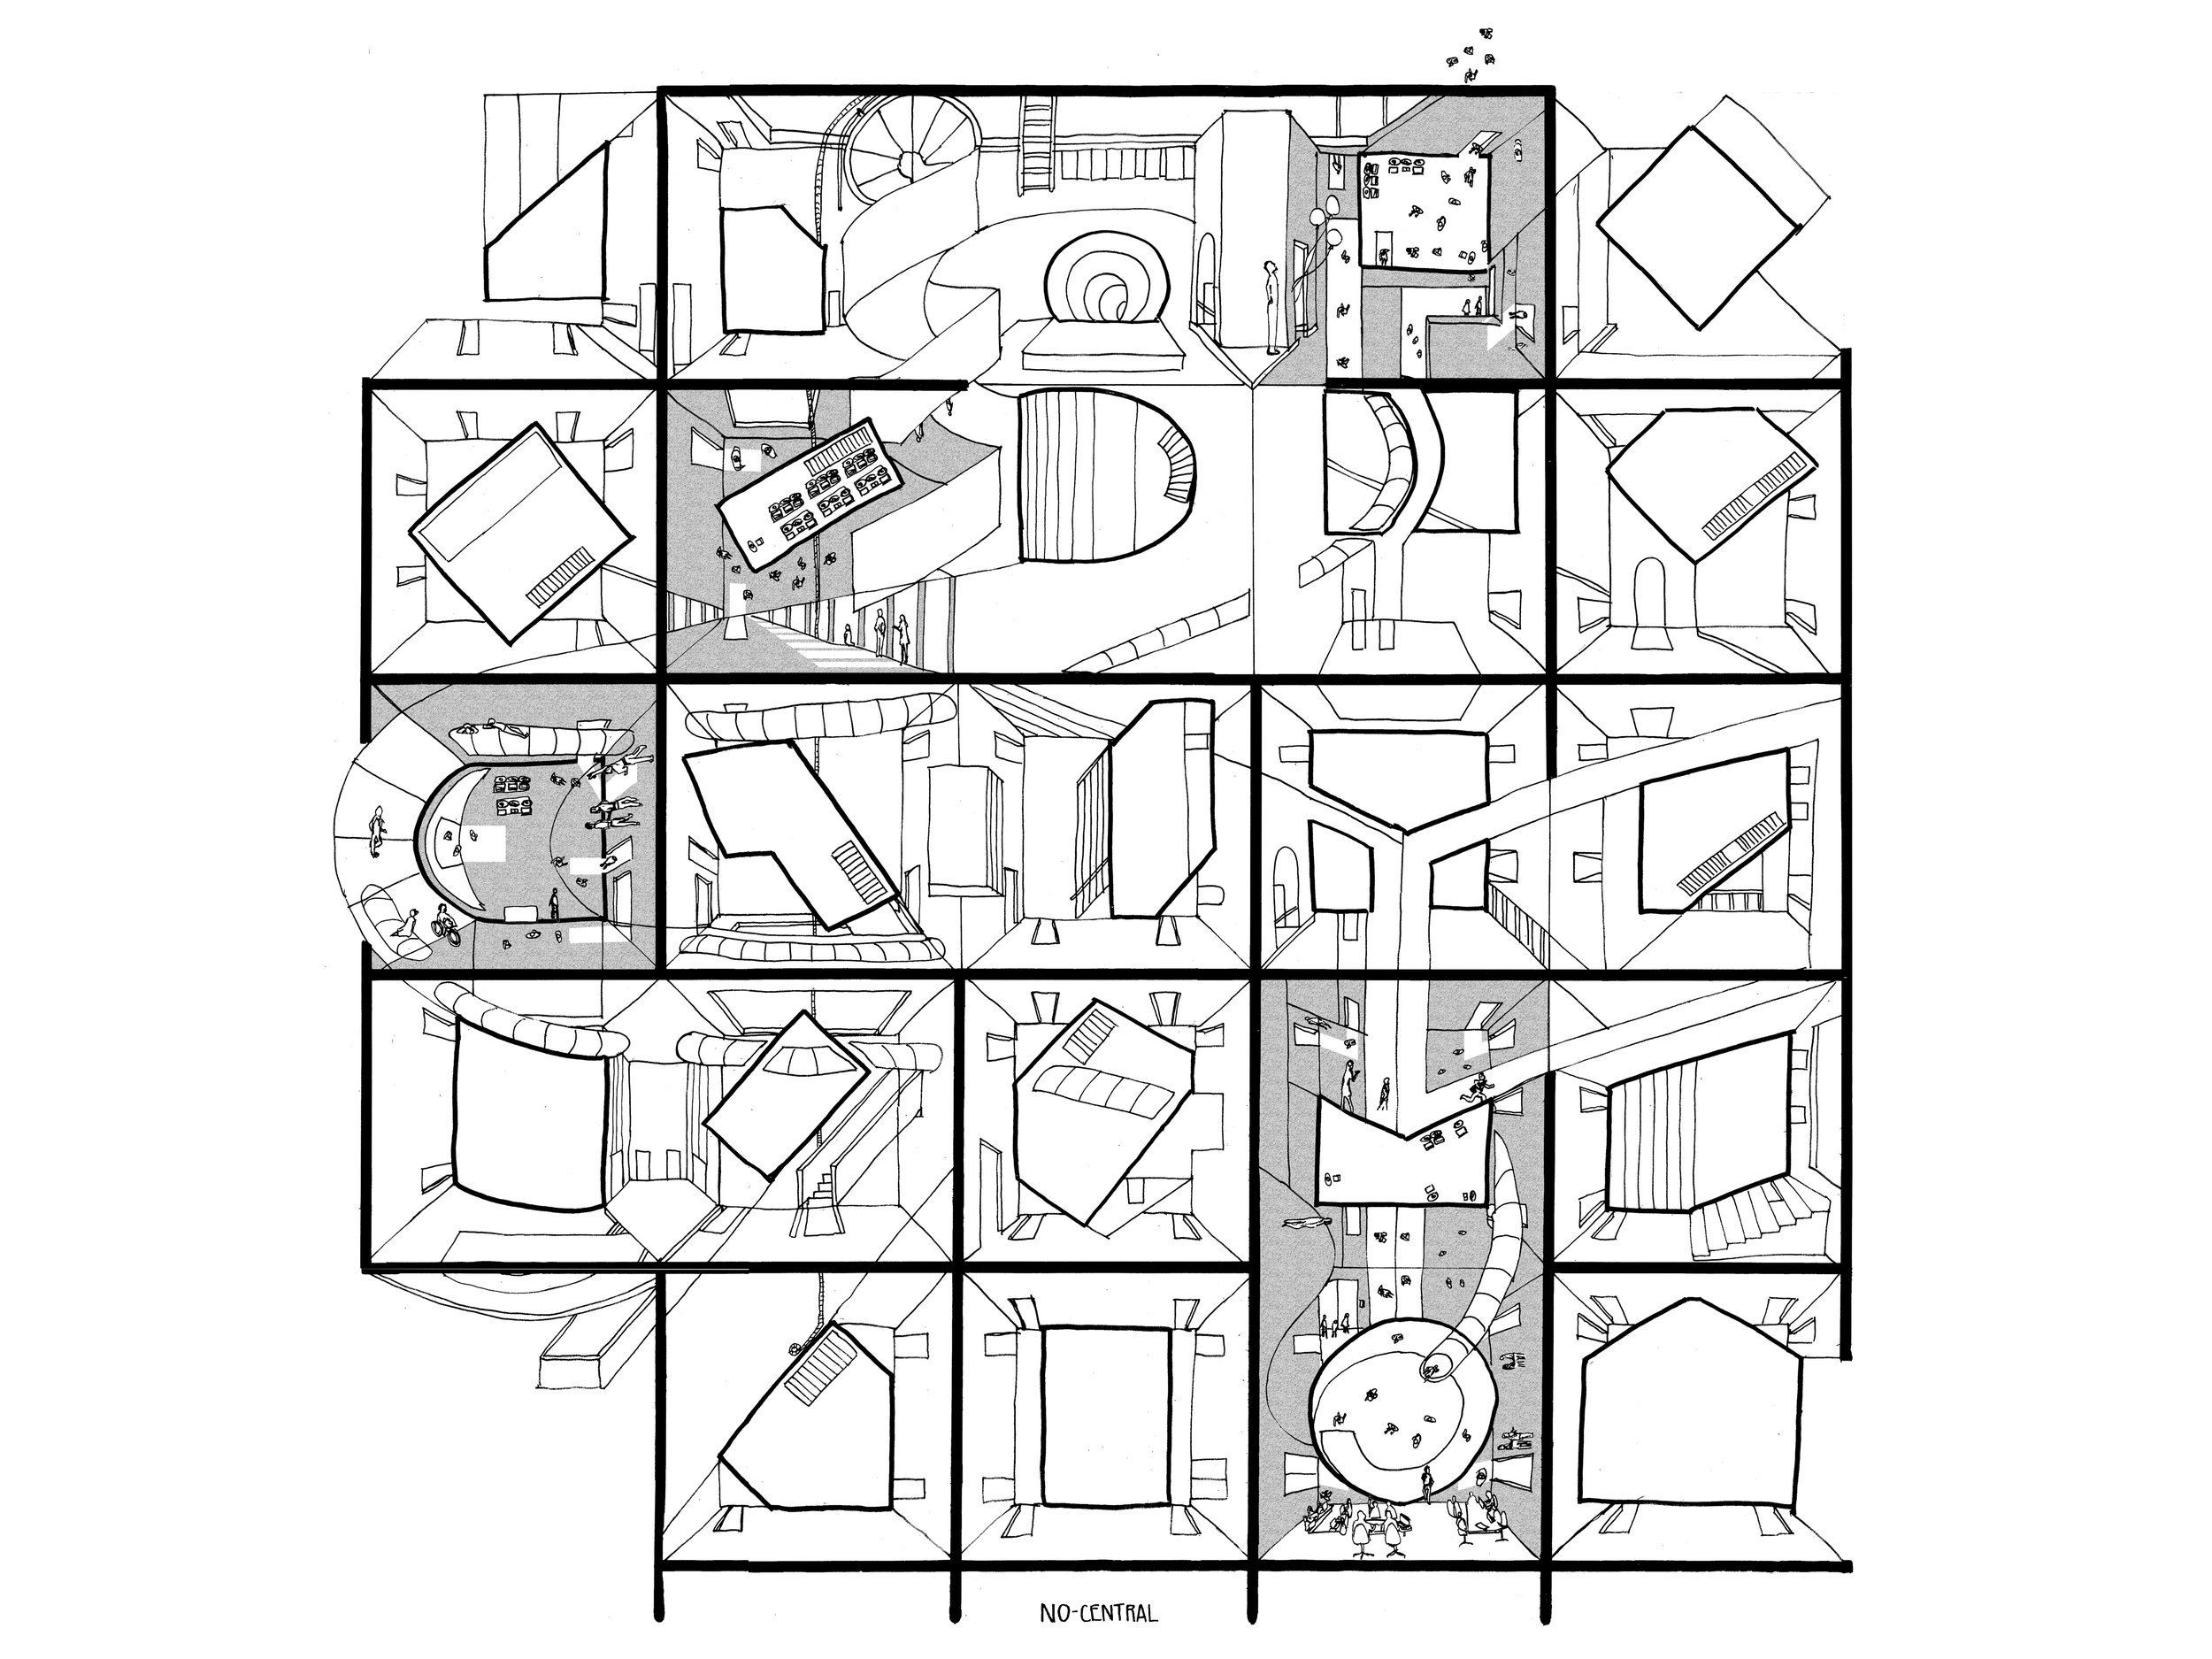 NO-SENTRAL: Re-Strategizing Tschumi's Architectural Disjunction in Coworking Spaces